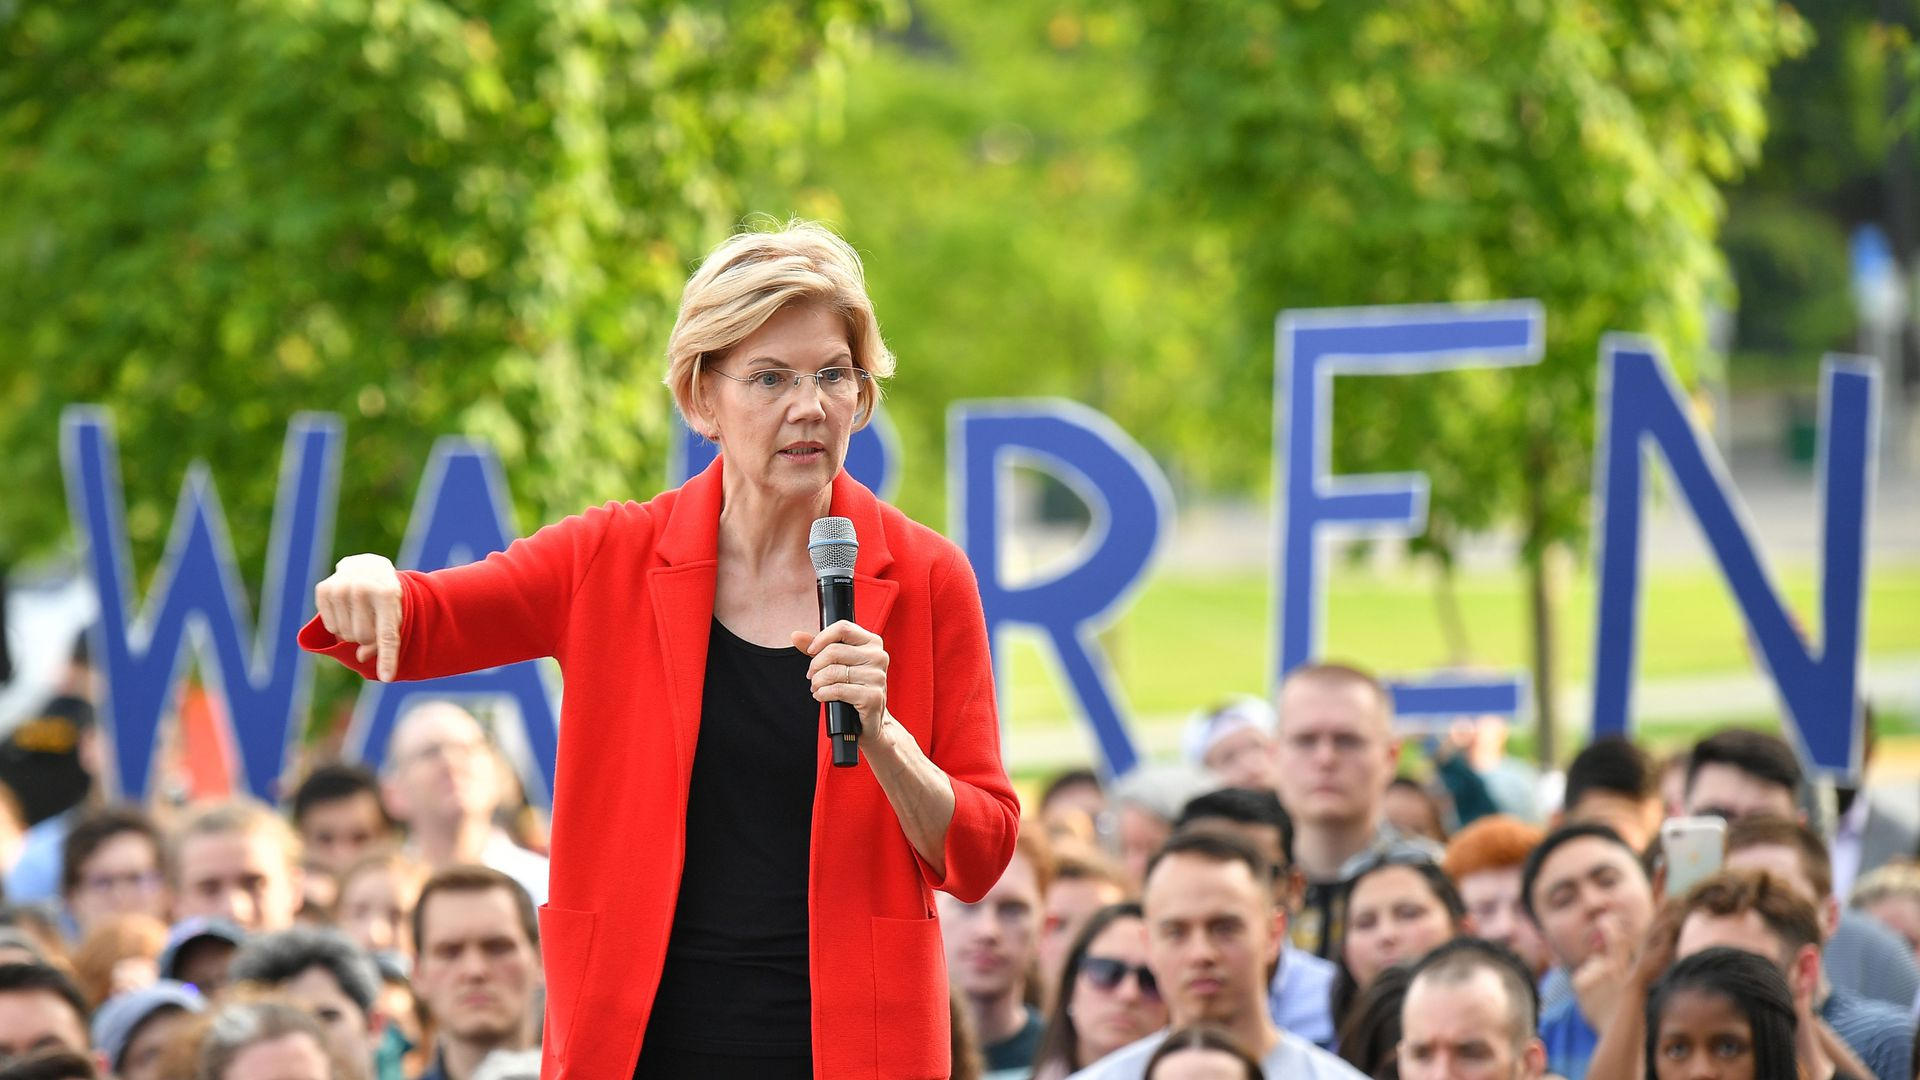 Warren at a campaign rally.